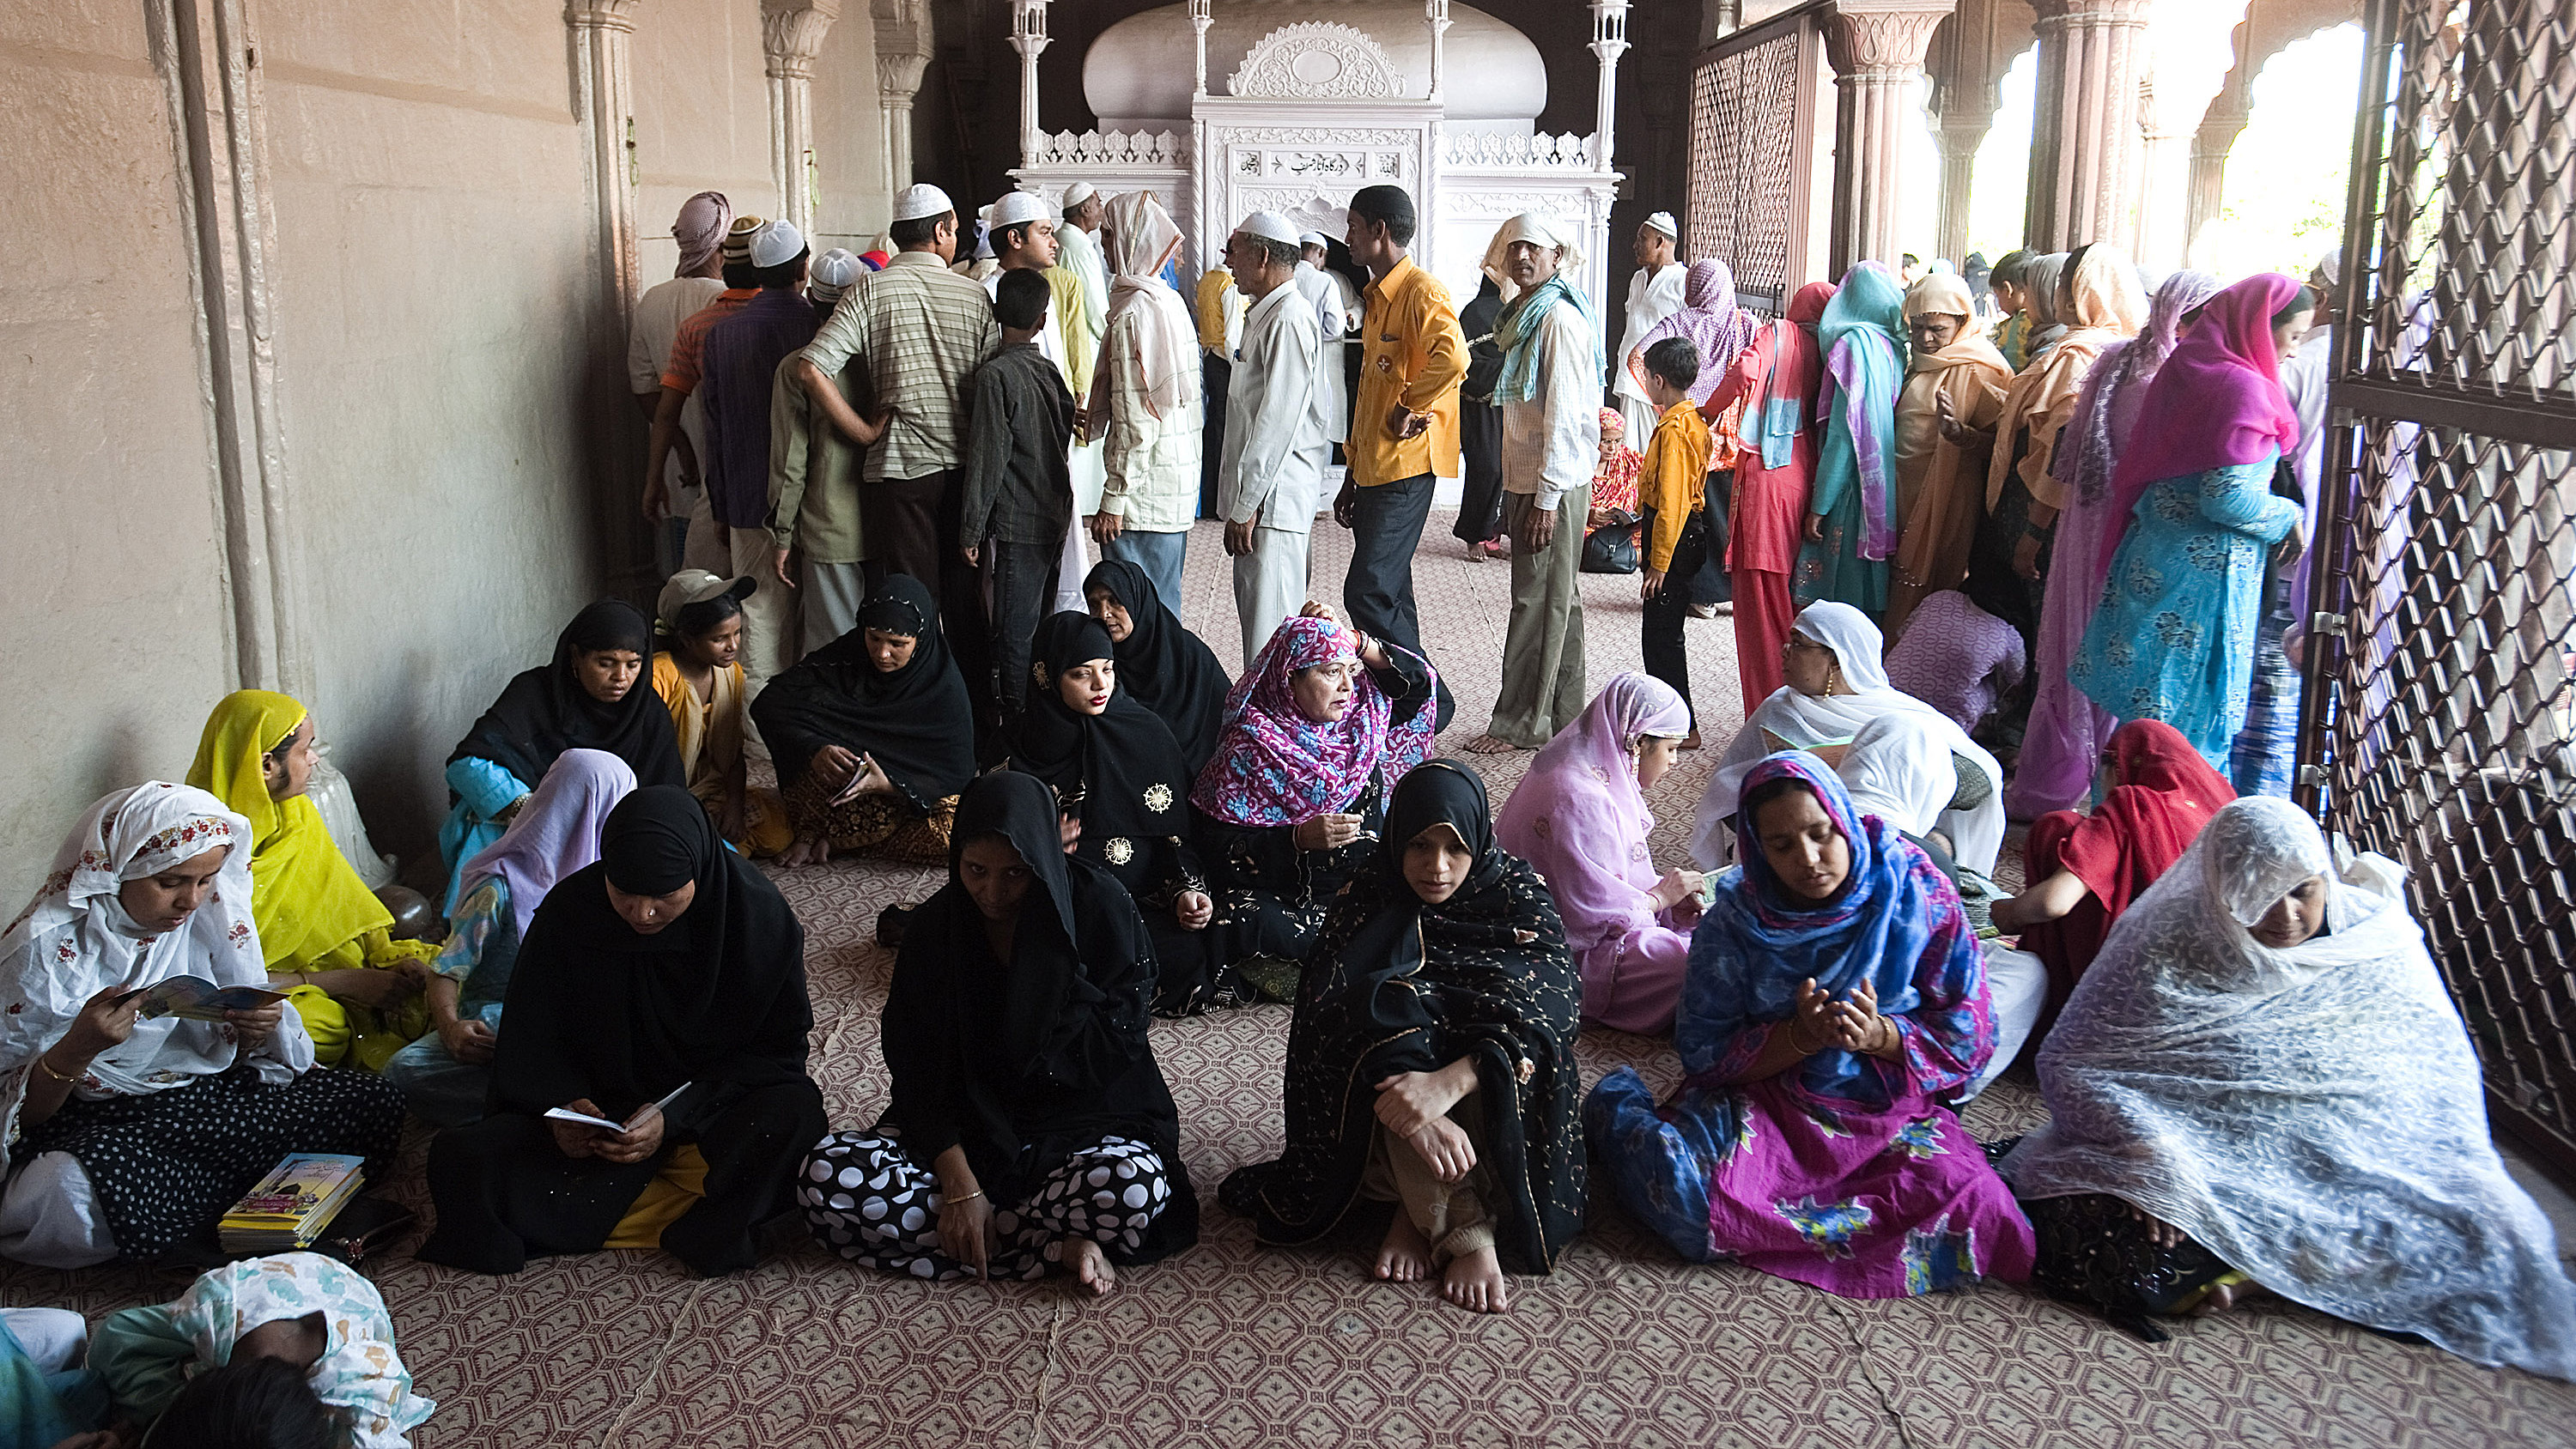 Triple talaq or instant divorce now a criminal offence